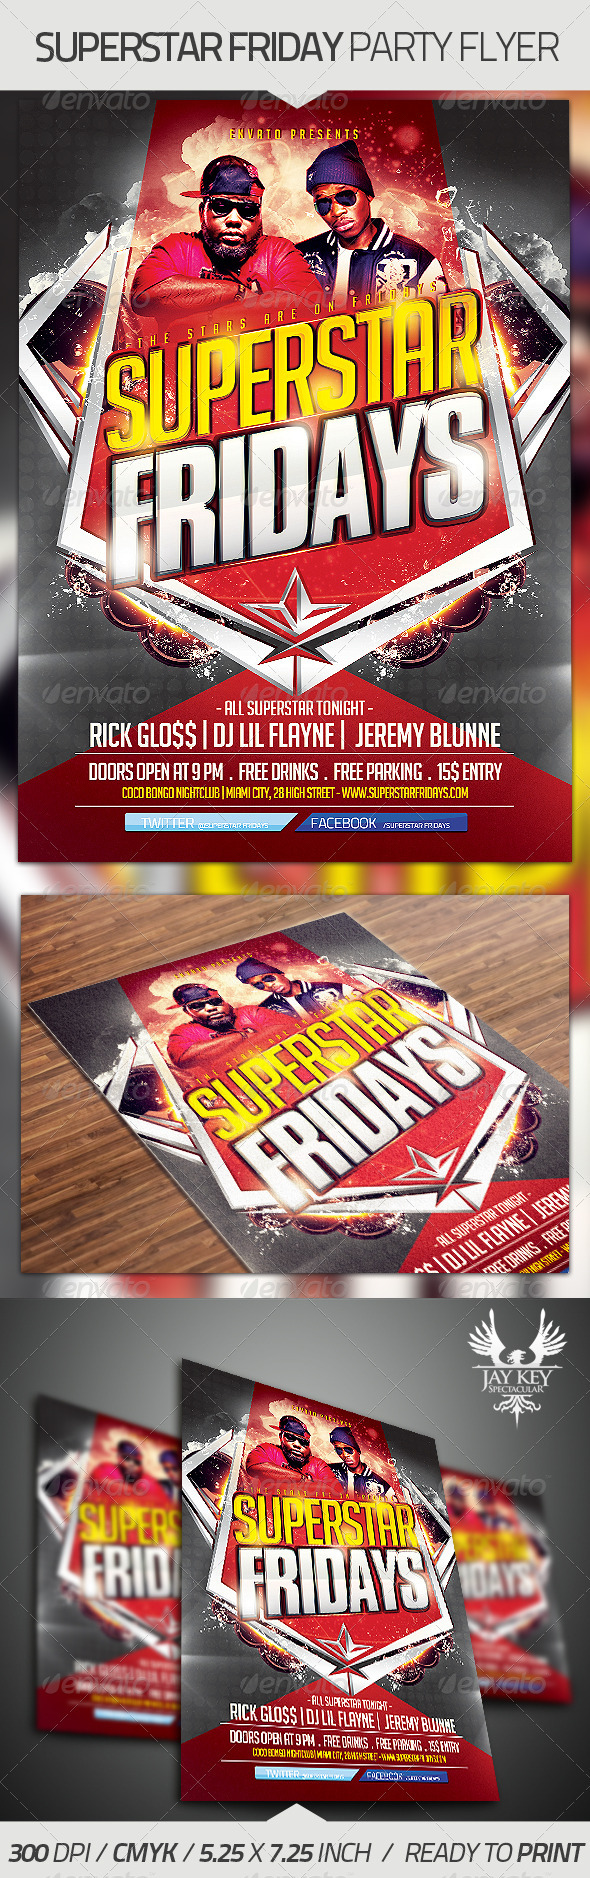 GraphicRiver Superstar Fridays Party Flyer 3682832